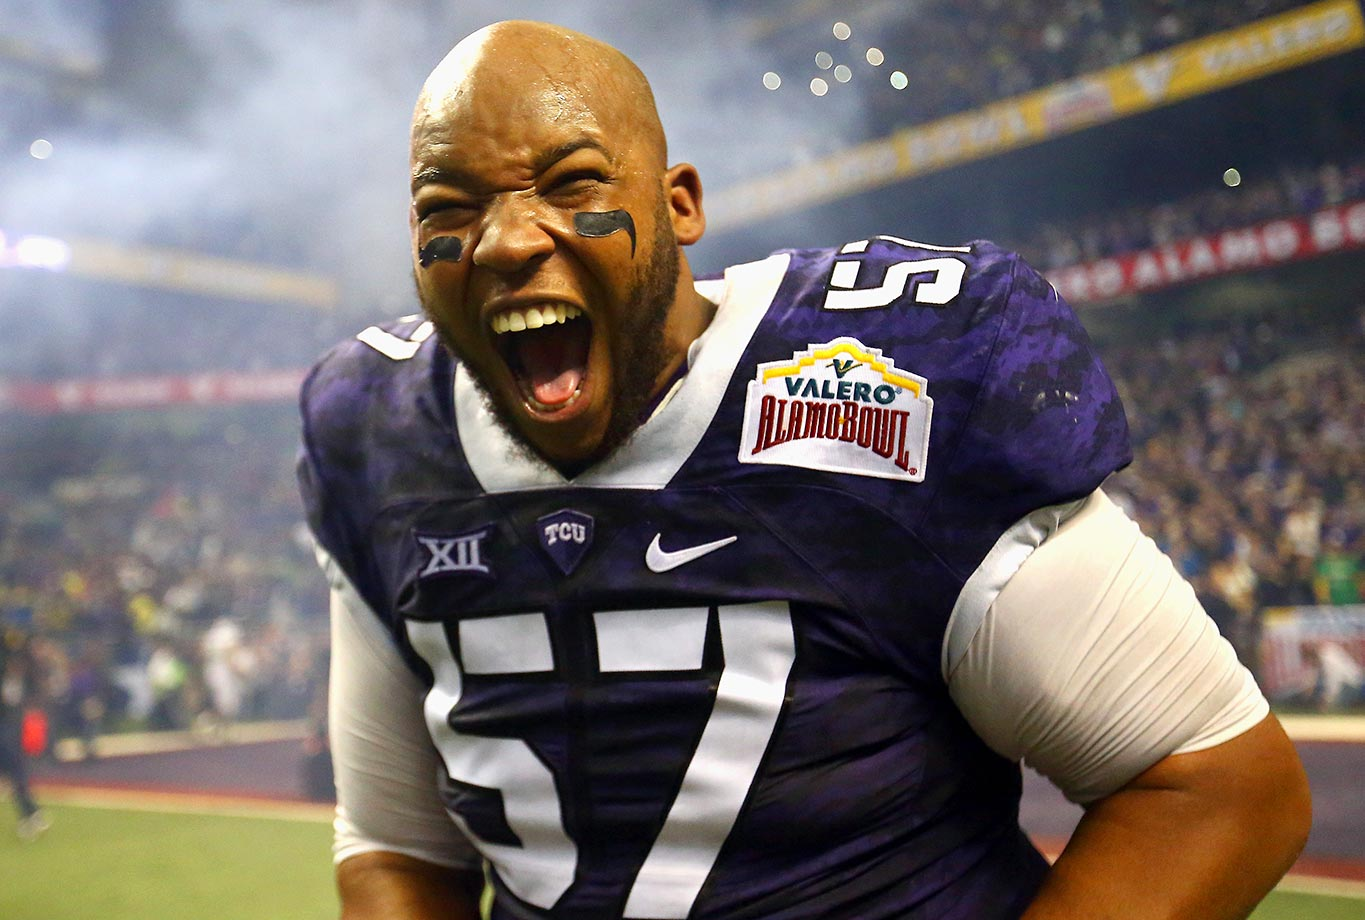 Davion Pierson of the TCU Horned Frogs celebrates after his team won the Valero Alamo Bowl.